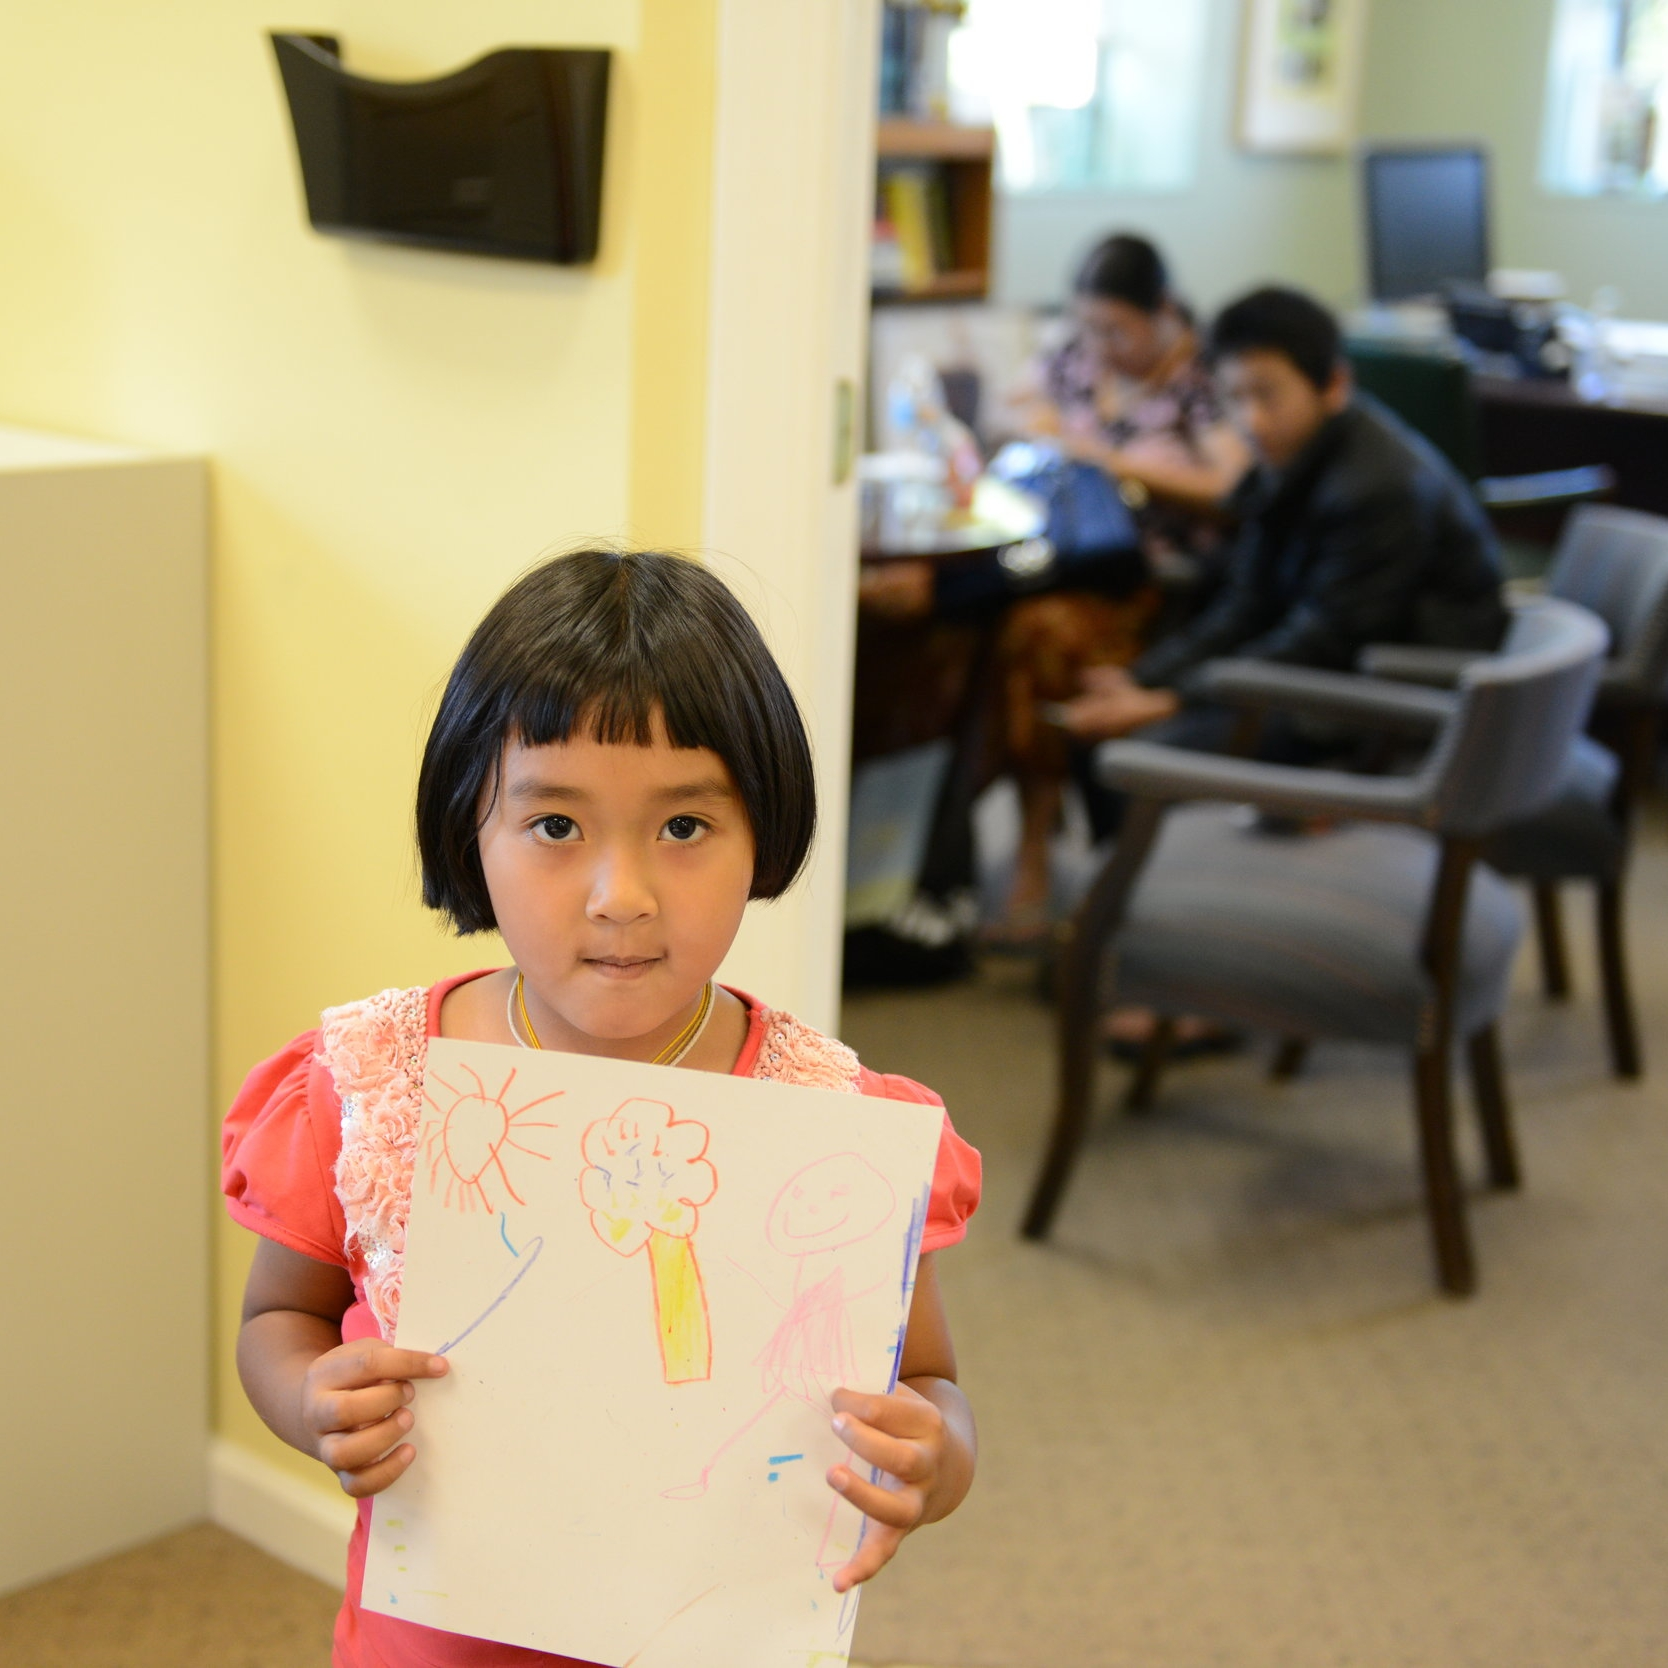 Clients include asylees fleeing brutal regimes, refugees seeking to start a new life here, and children who were brought to the U.S. at a young age.